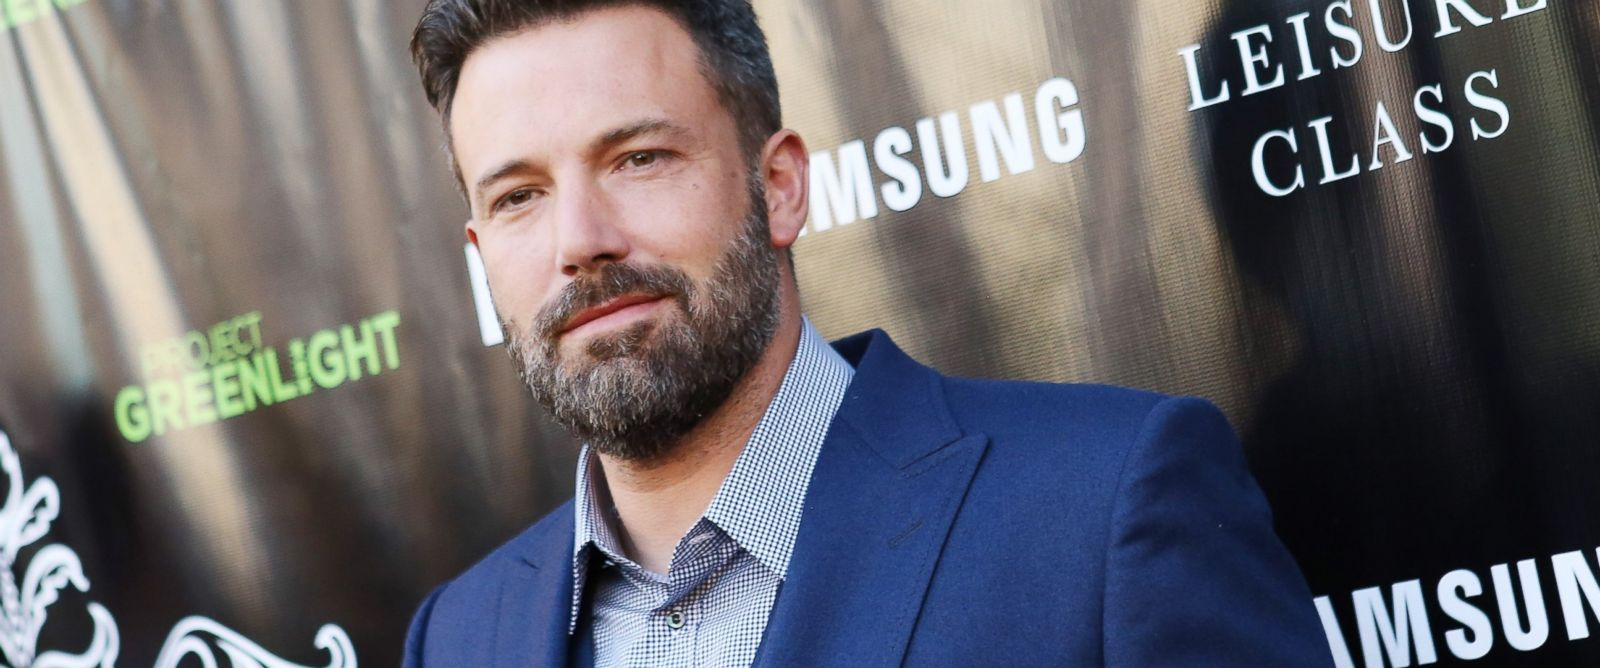 """PHOTO:Ben Affleck arrives at The Project Greenlight season 4 winning film """"The Leisure Class,"""" Aug. 10, 2015 in Los Angeles."""